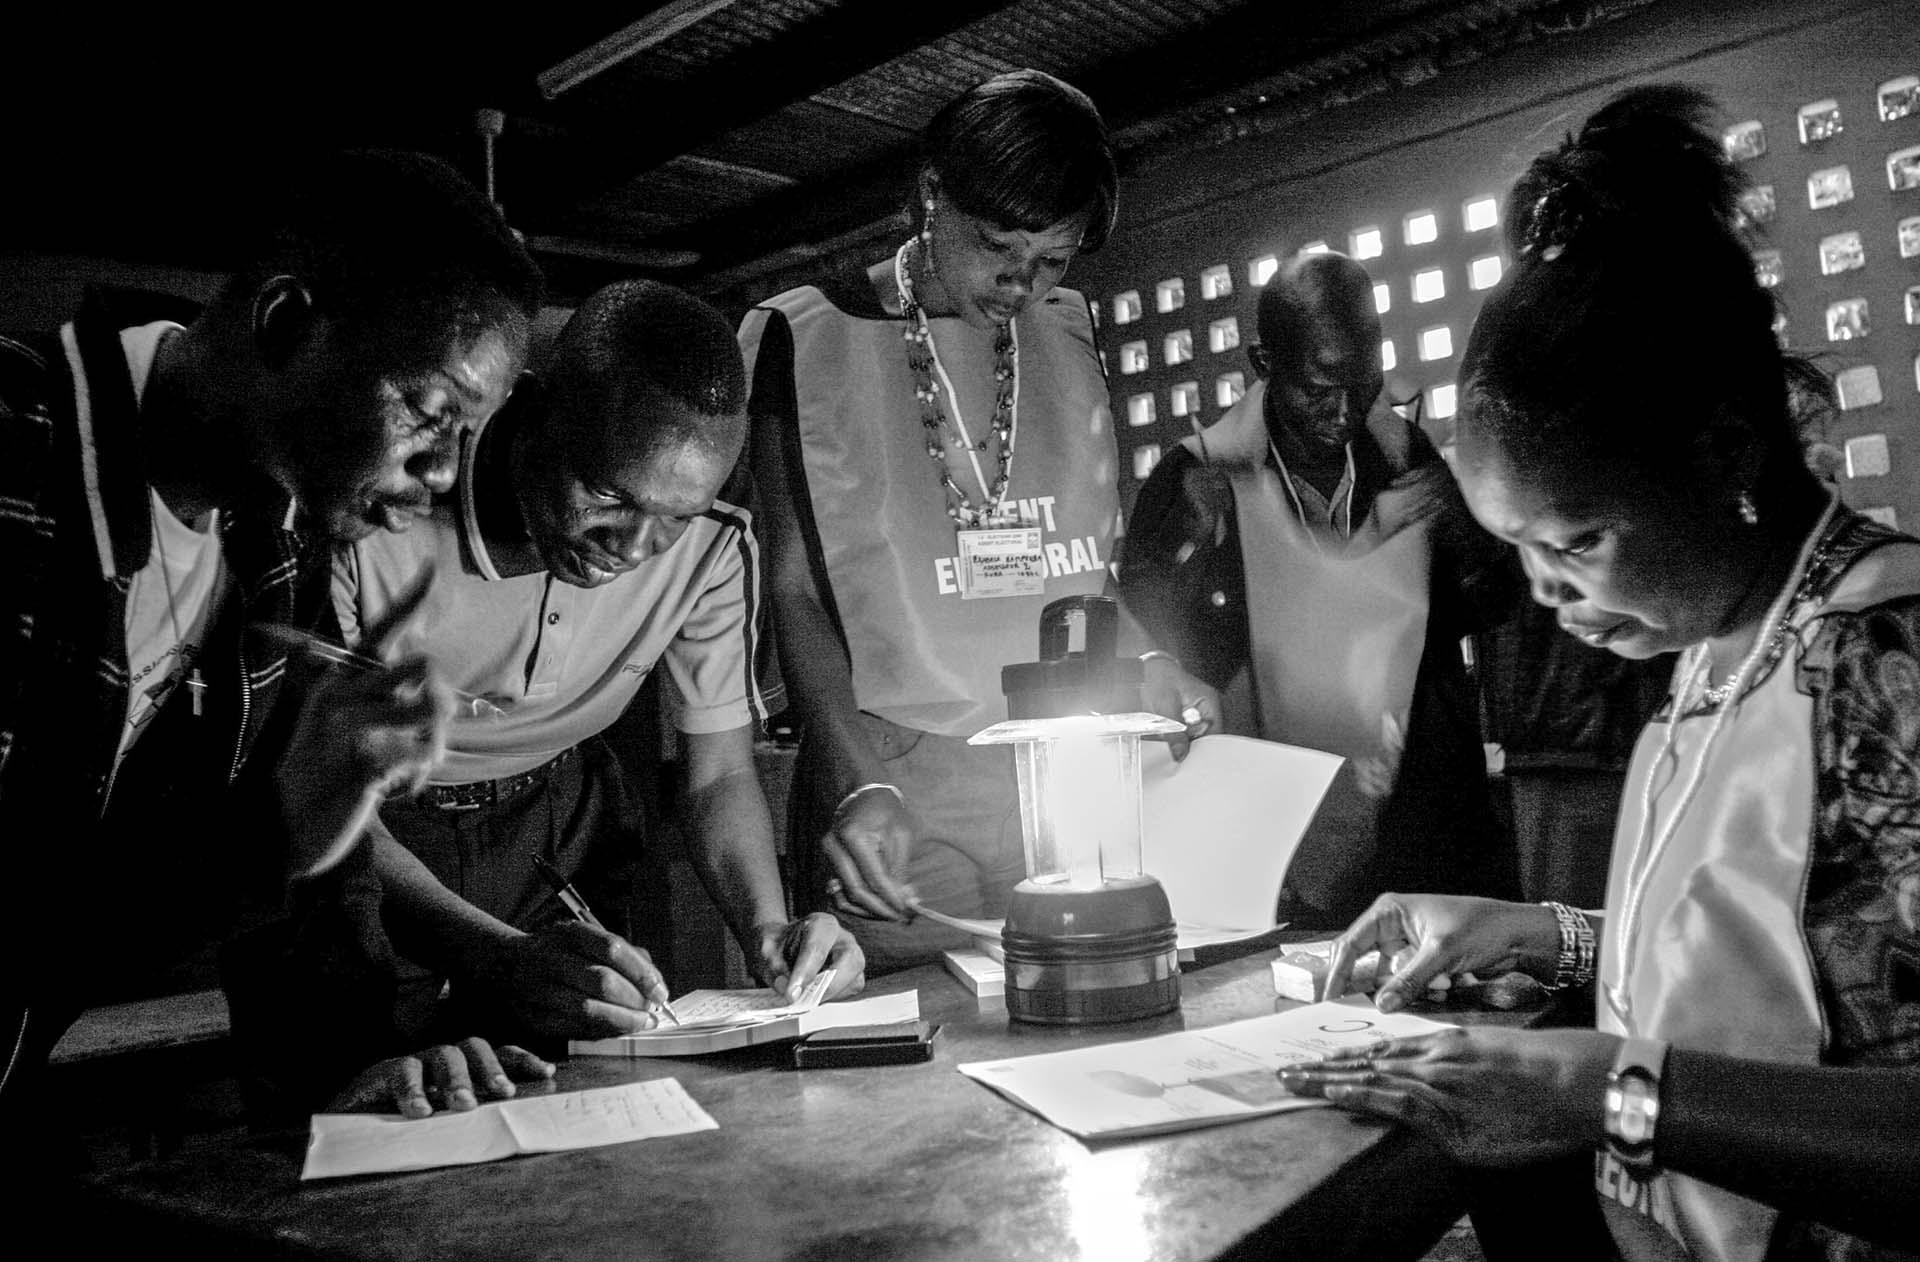 Election workers work on the last minute details before they open the ballot boxes in the early morning in Kinshasa, the capital of Democratic Republic of Congo for the 2nd round of the presidential election.